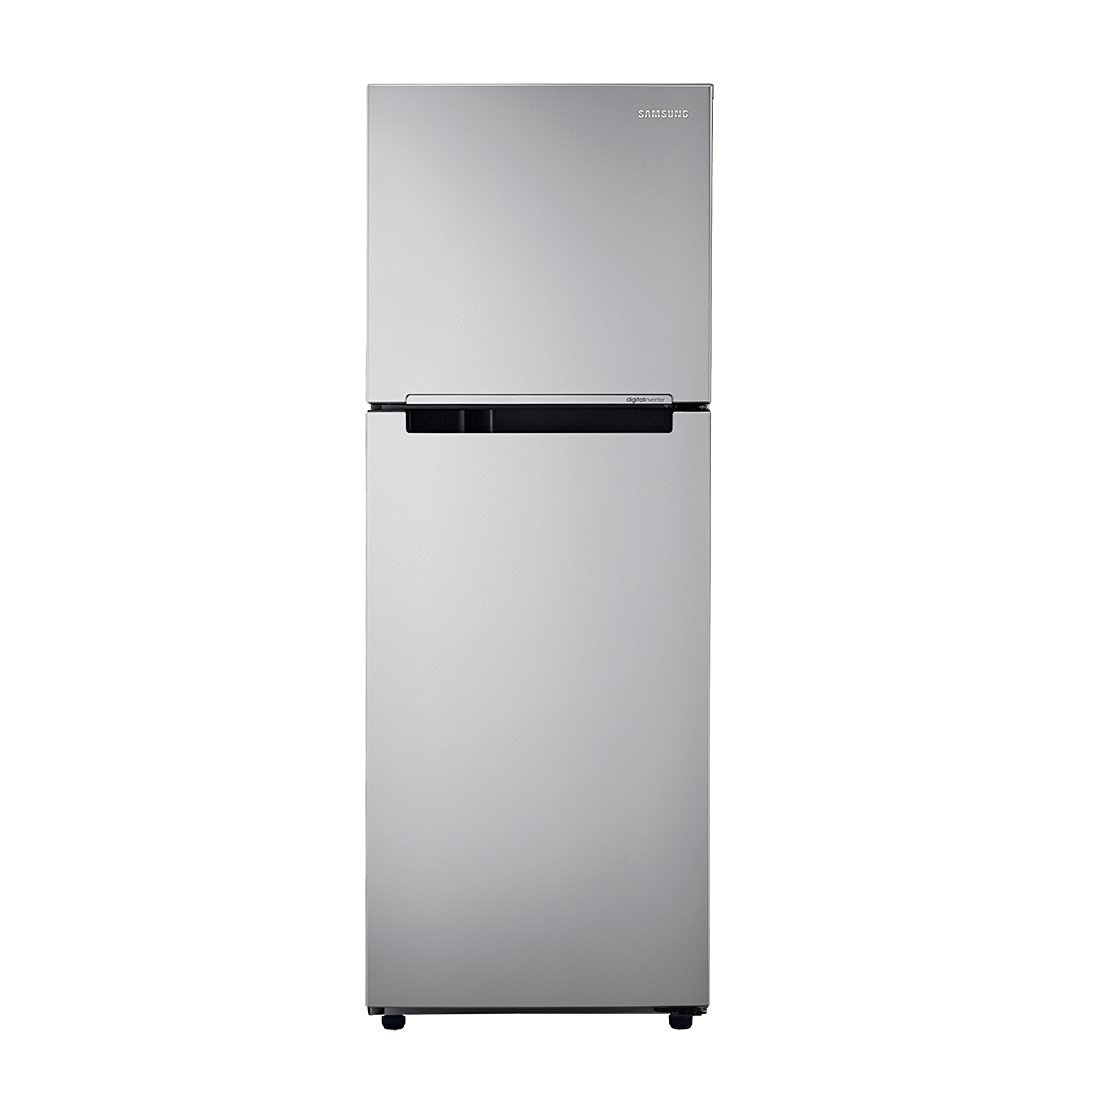 Samsung RT28K3022SE/HL/NL Frost free Double door Refrigerator  253 Ltrs, 2 Star Rating, Elective Silver